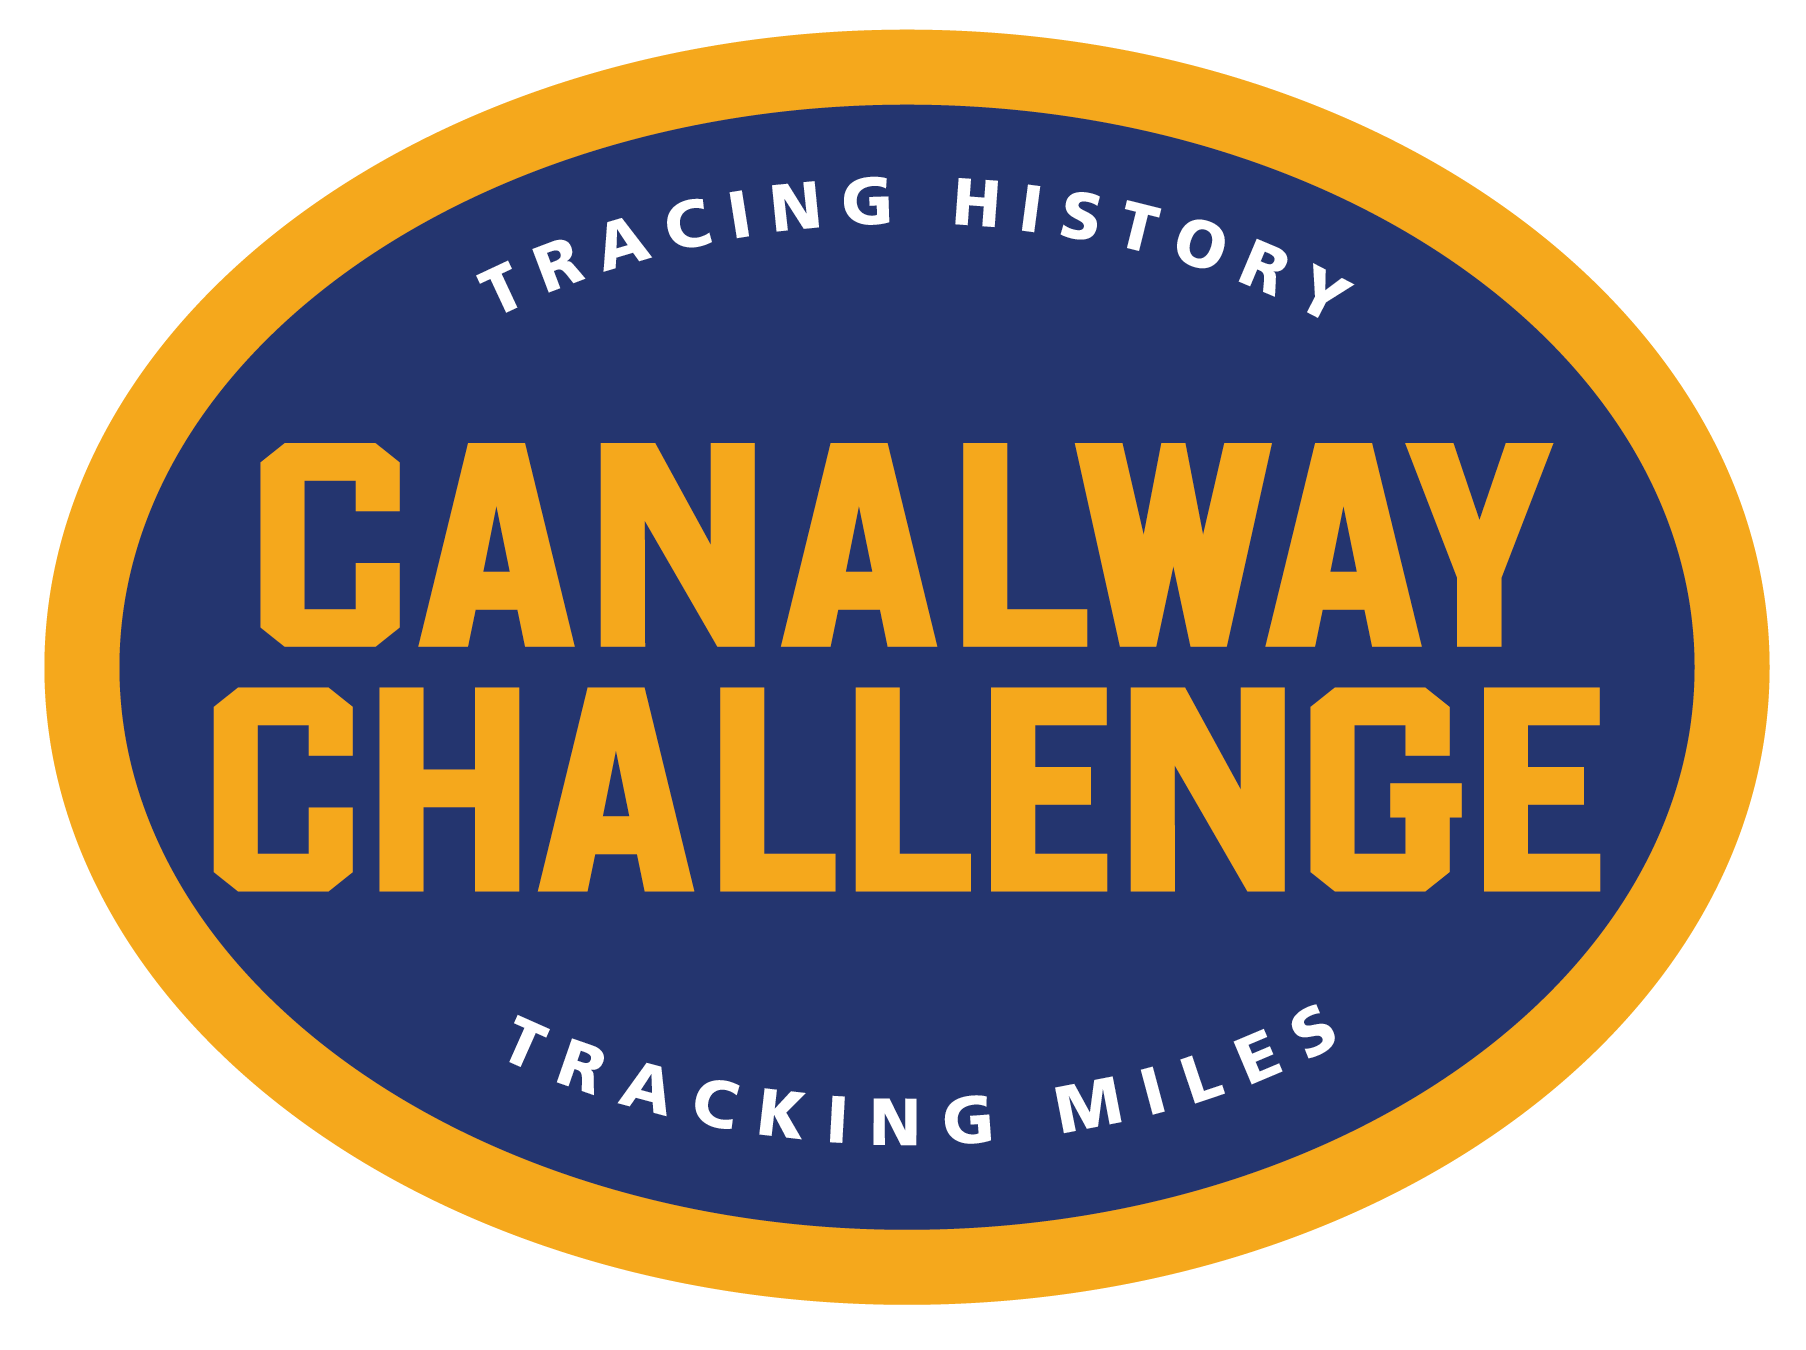 Canalway Challenge logo_tag_FINAL.png